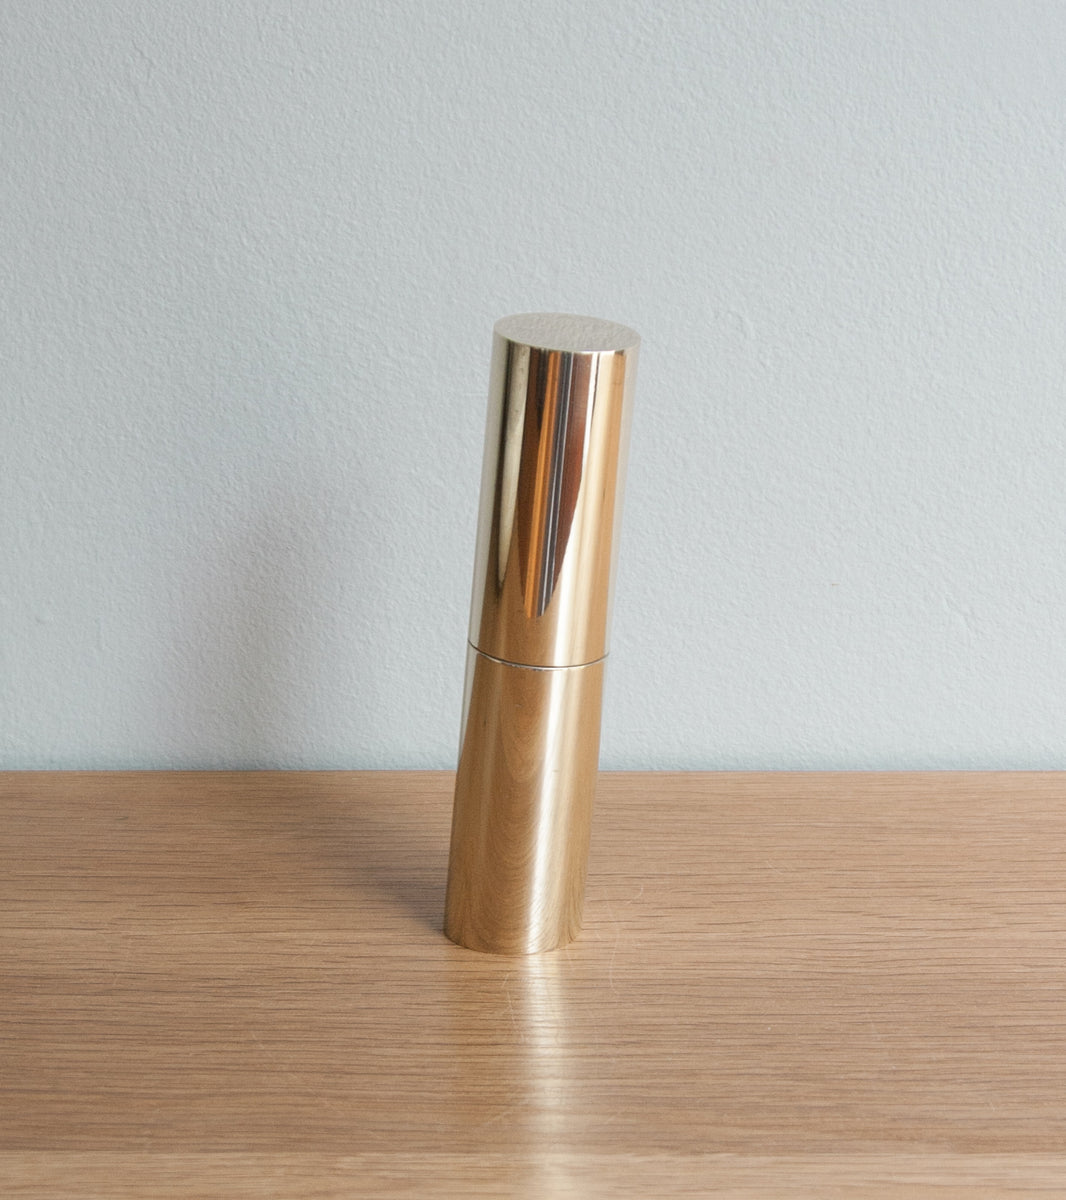 Original Inventive Italic Mill - Polished Brass Michael Anastassiades & Carl Auböck  - Image 2